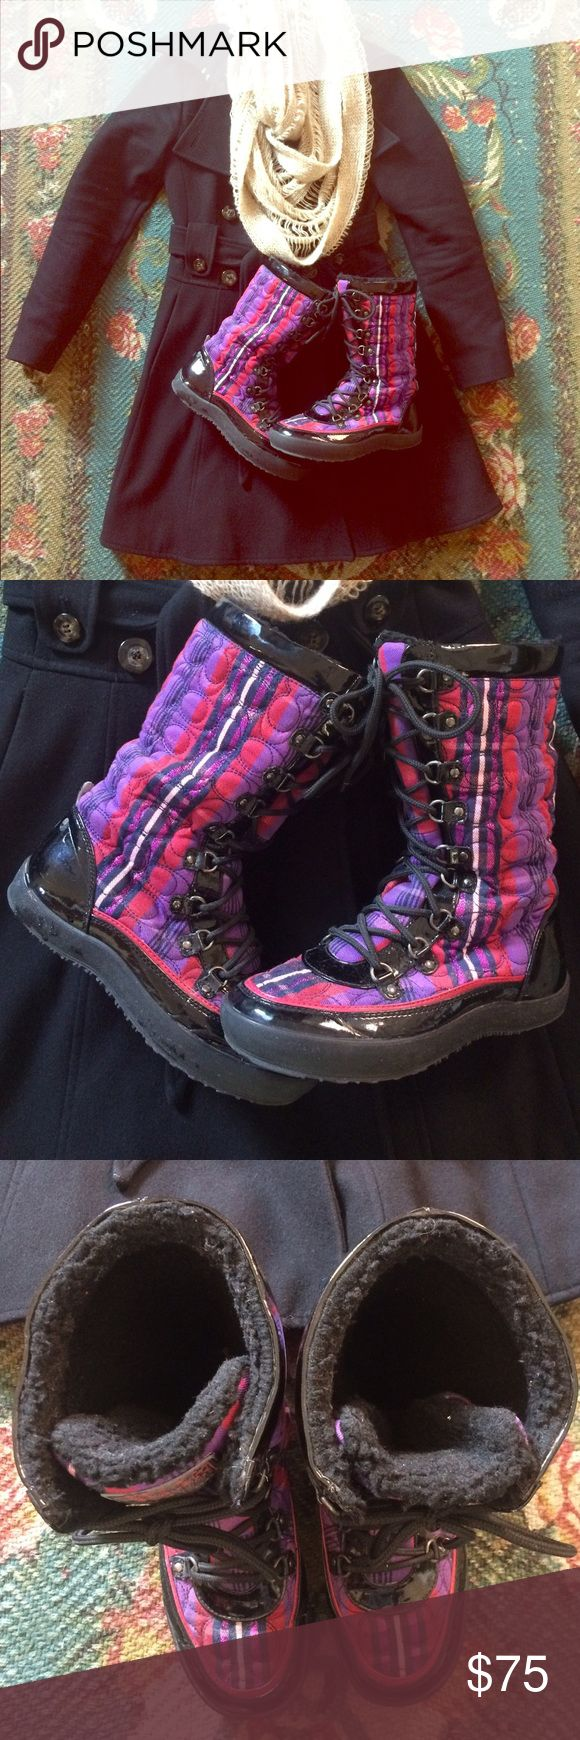 ❄️ sale! COACH tartan plaid winter boots Calling all bargain hunters! Authentic Coach tartan plaid berry purple winter boots with glittery lurex threading. Fleece lining and waterproof. Worn during a trip to Poland in December. VERY comfortable and warm :) Pretty sure size 7 but may be 7.5. Some signs of wear in fleece and a few scuff marks in leather. 🌸bundle 3; save 20%!!🌸 Coach Shoes Winter & Rain Boots